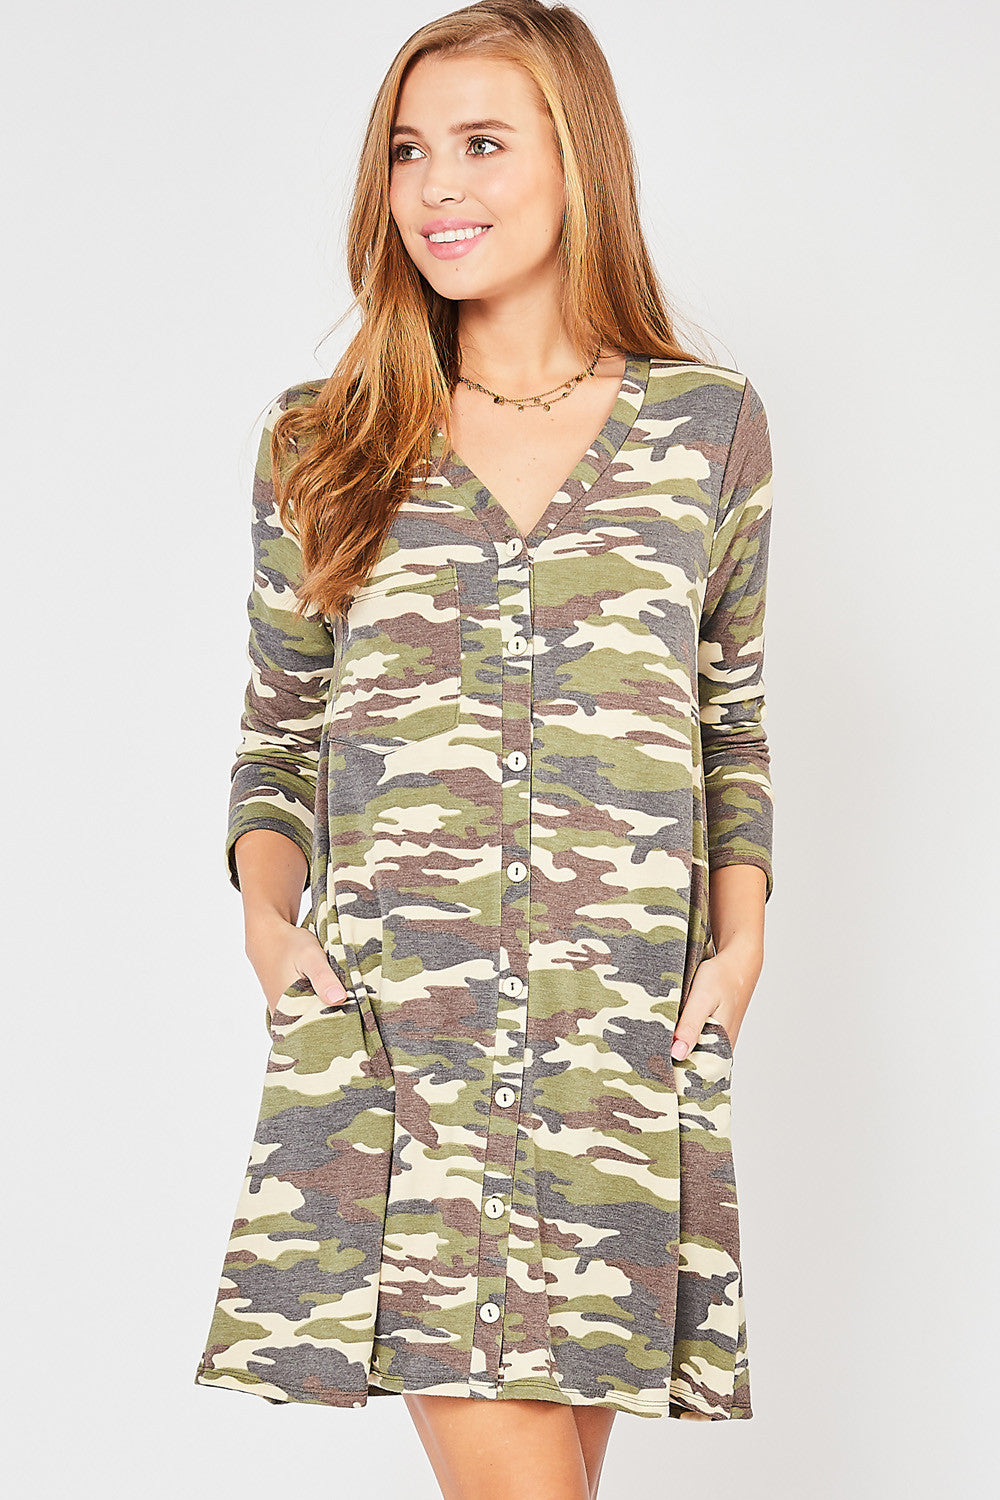 Camo Button Dress / Cardigan